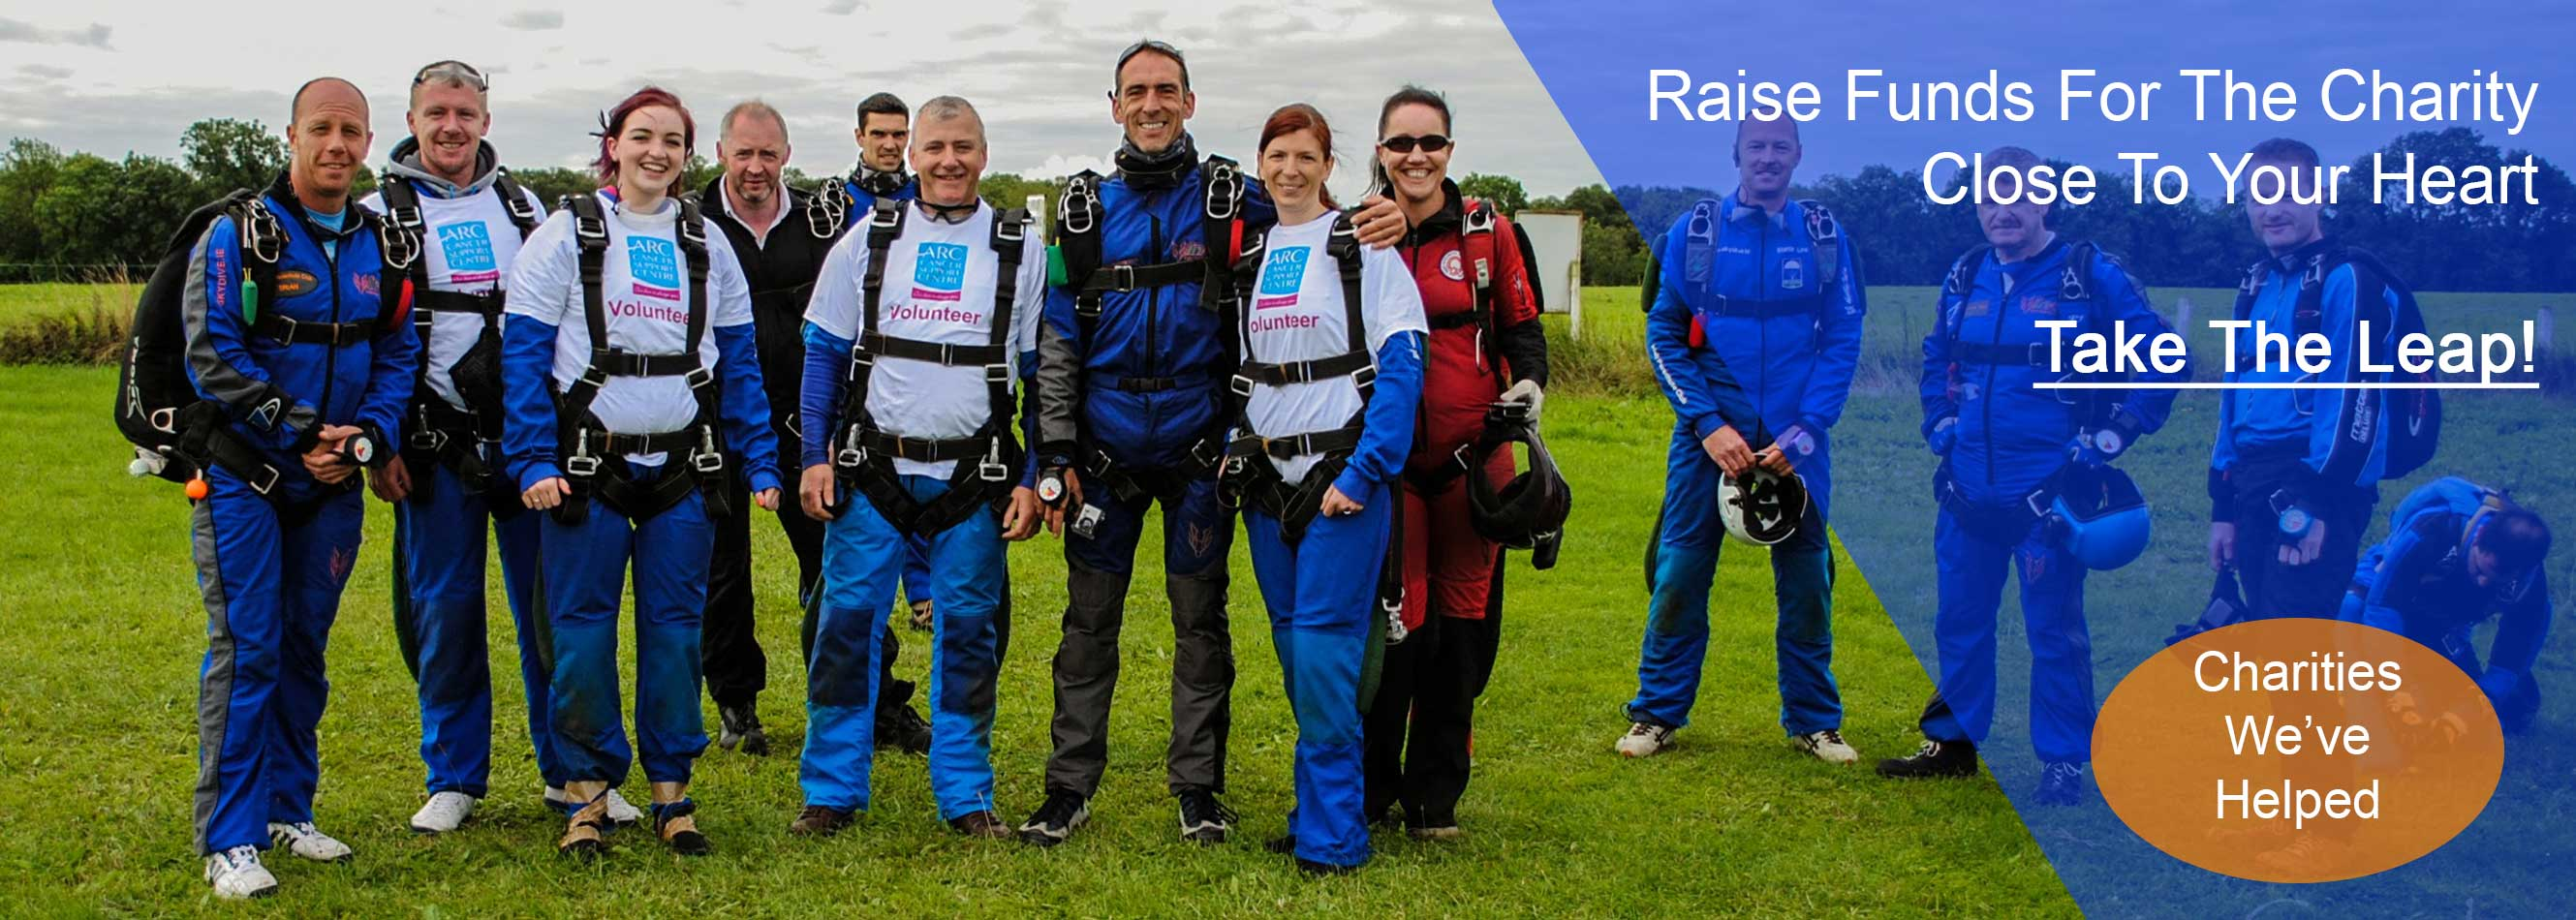 Raise funds for the charity close to your heart with Skydive.ie and the Irish Parachute Club